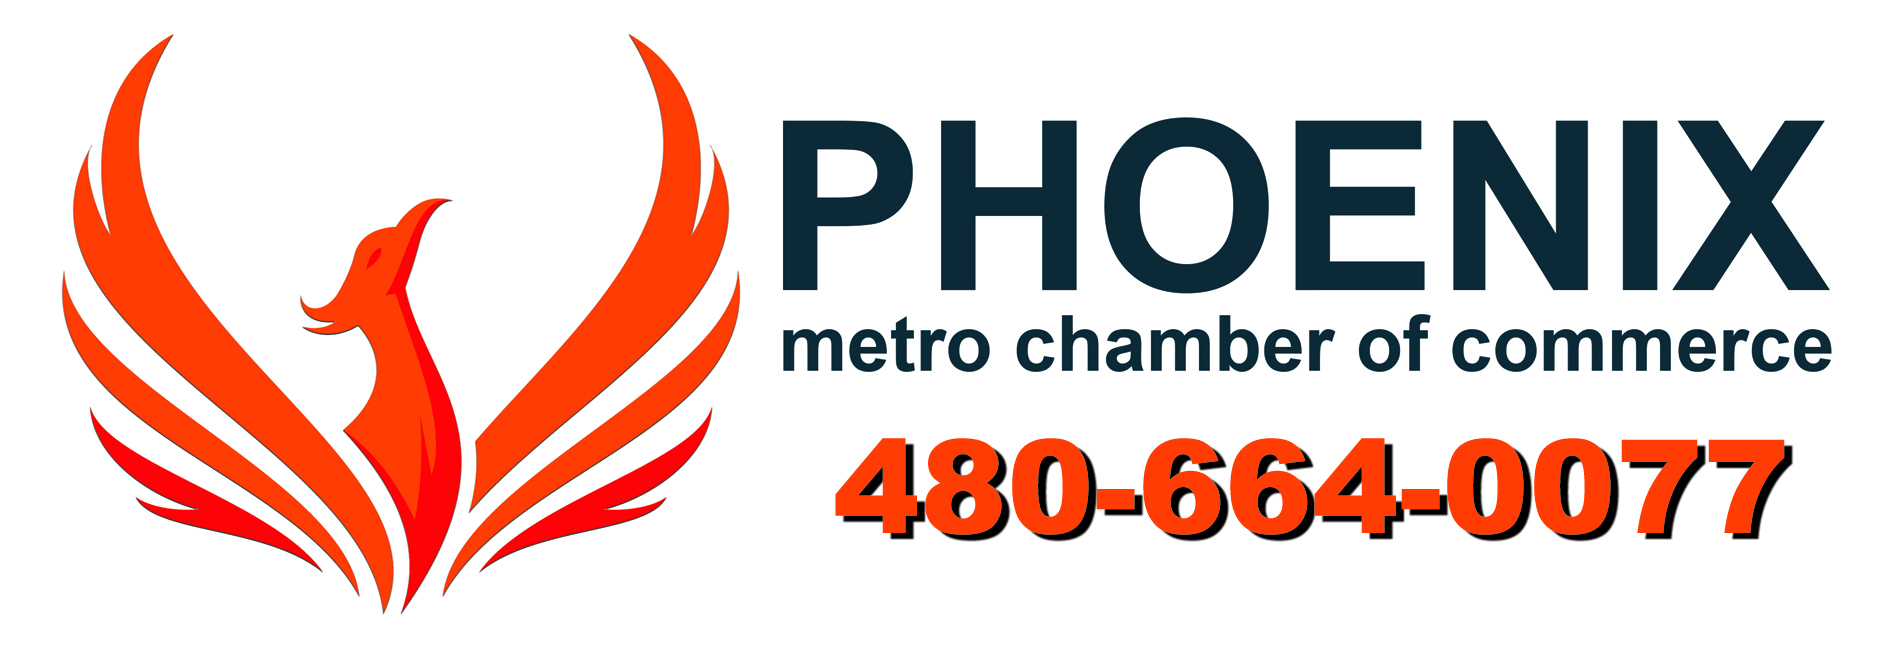 Phoenix Metro Chamber of Commerce Logo